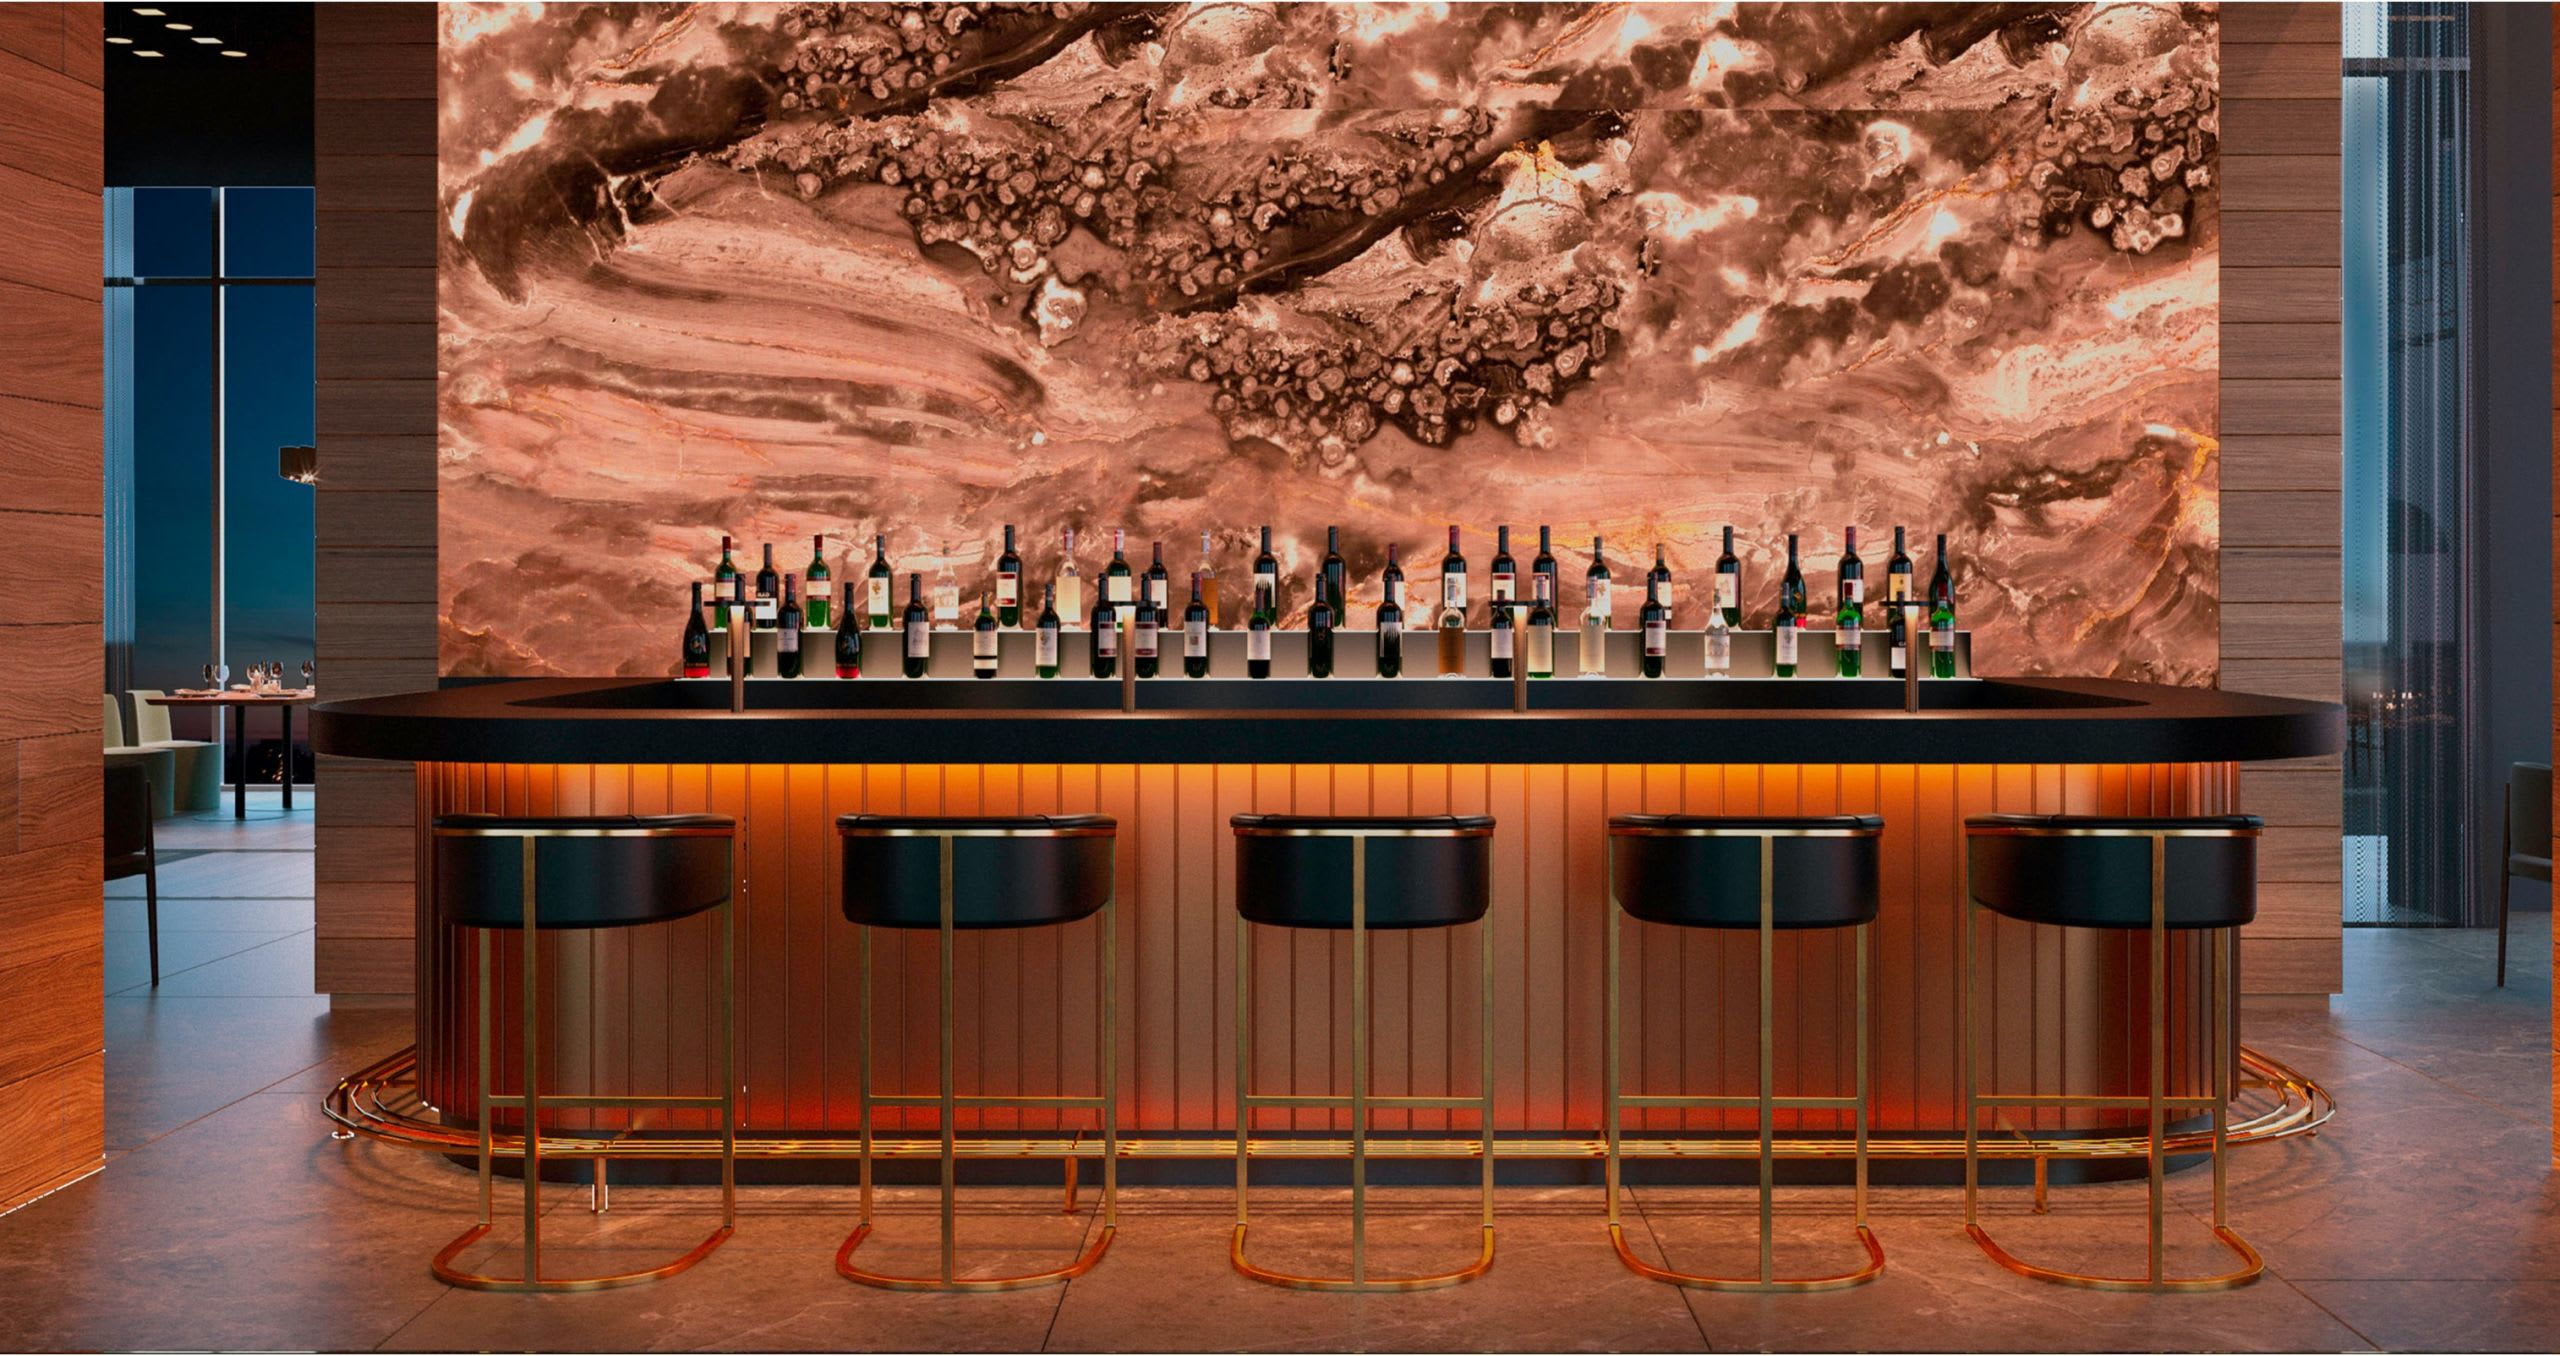 Bar image with stools and drinks